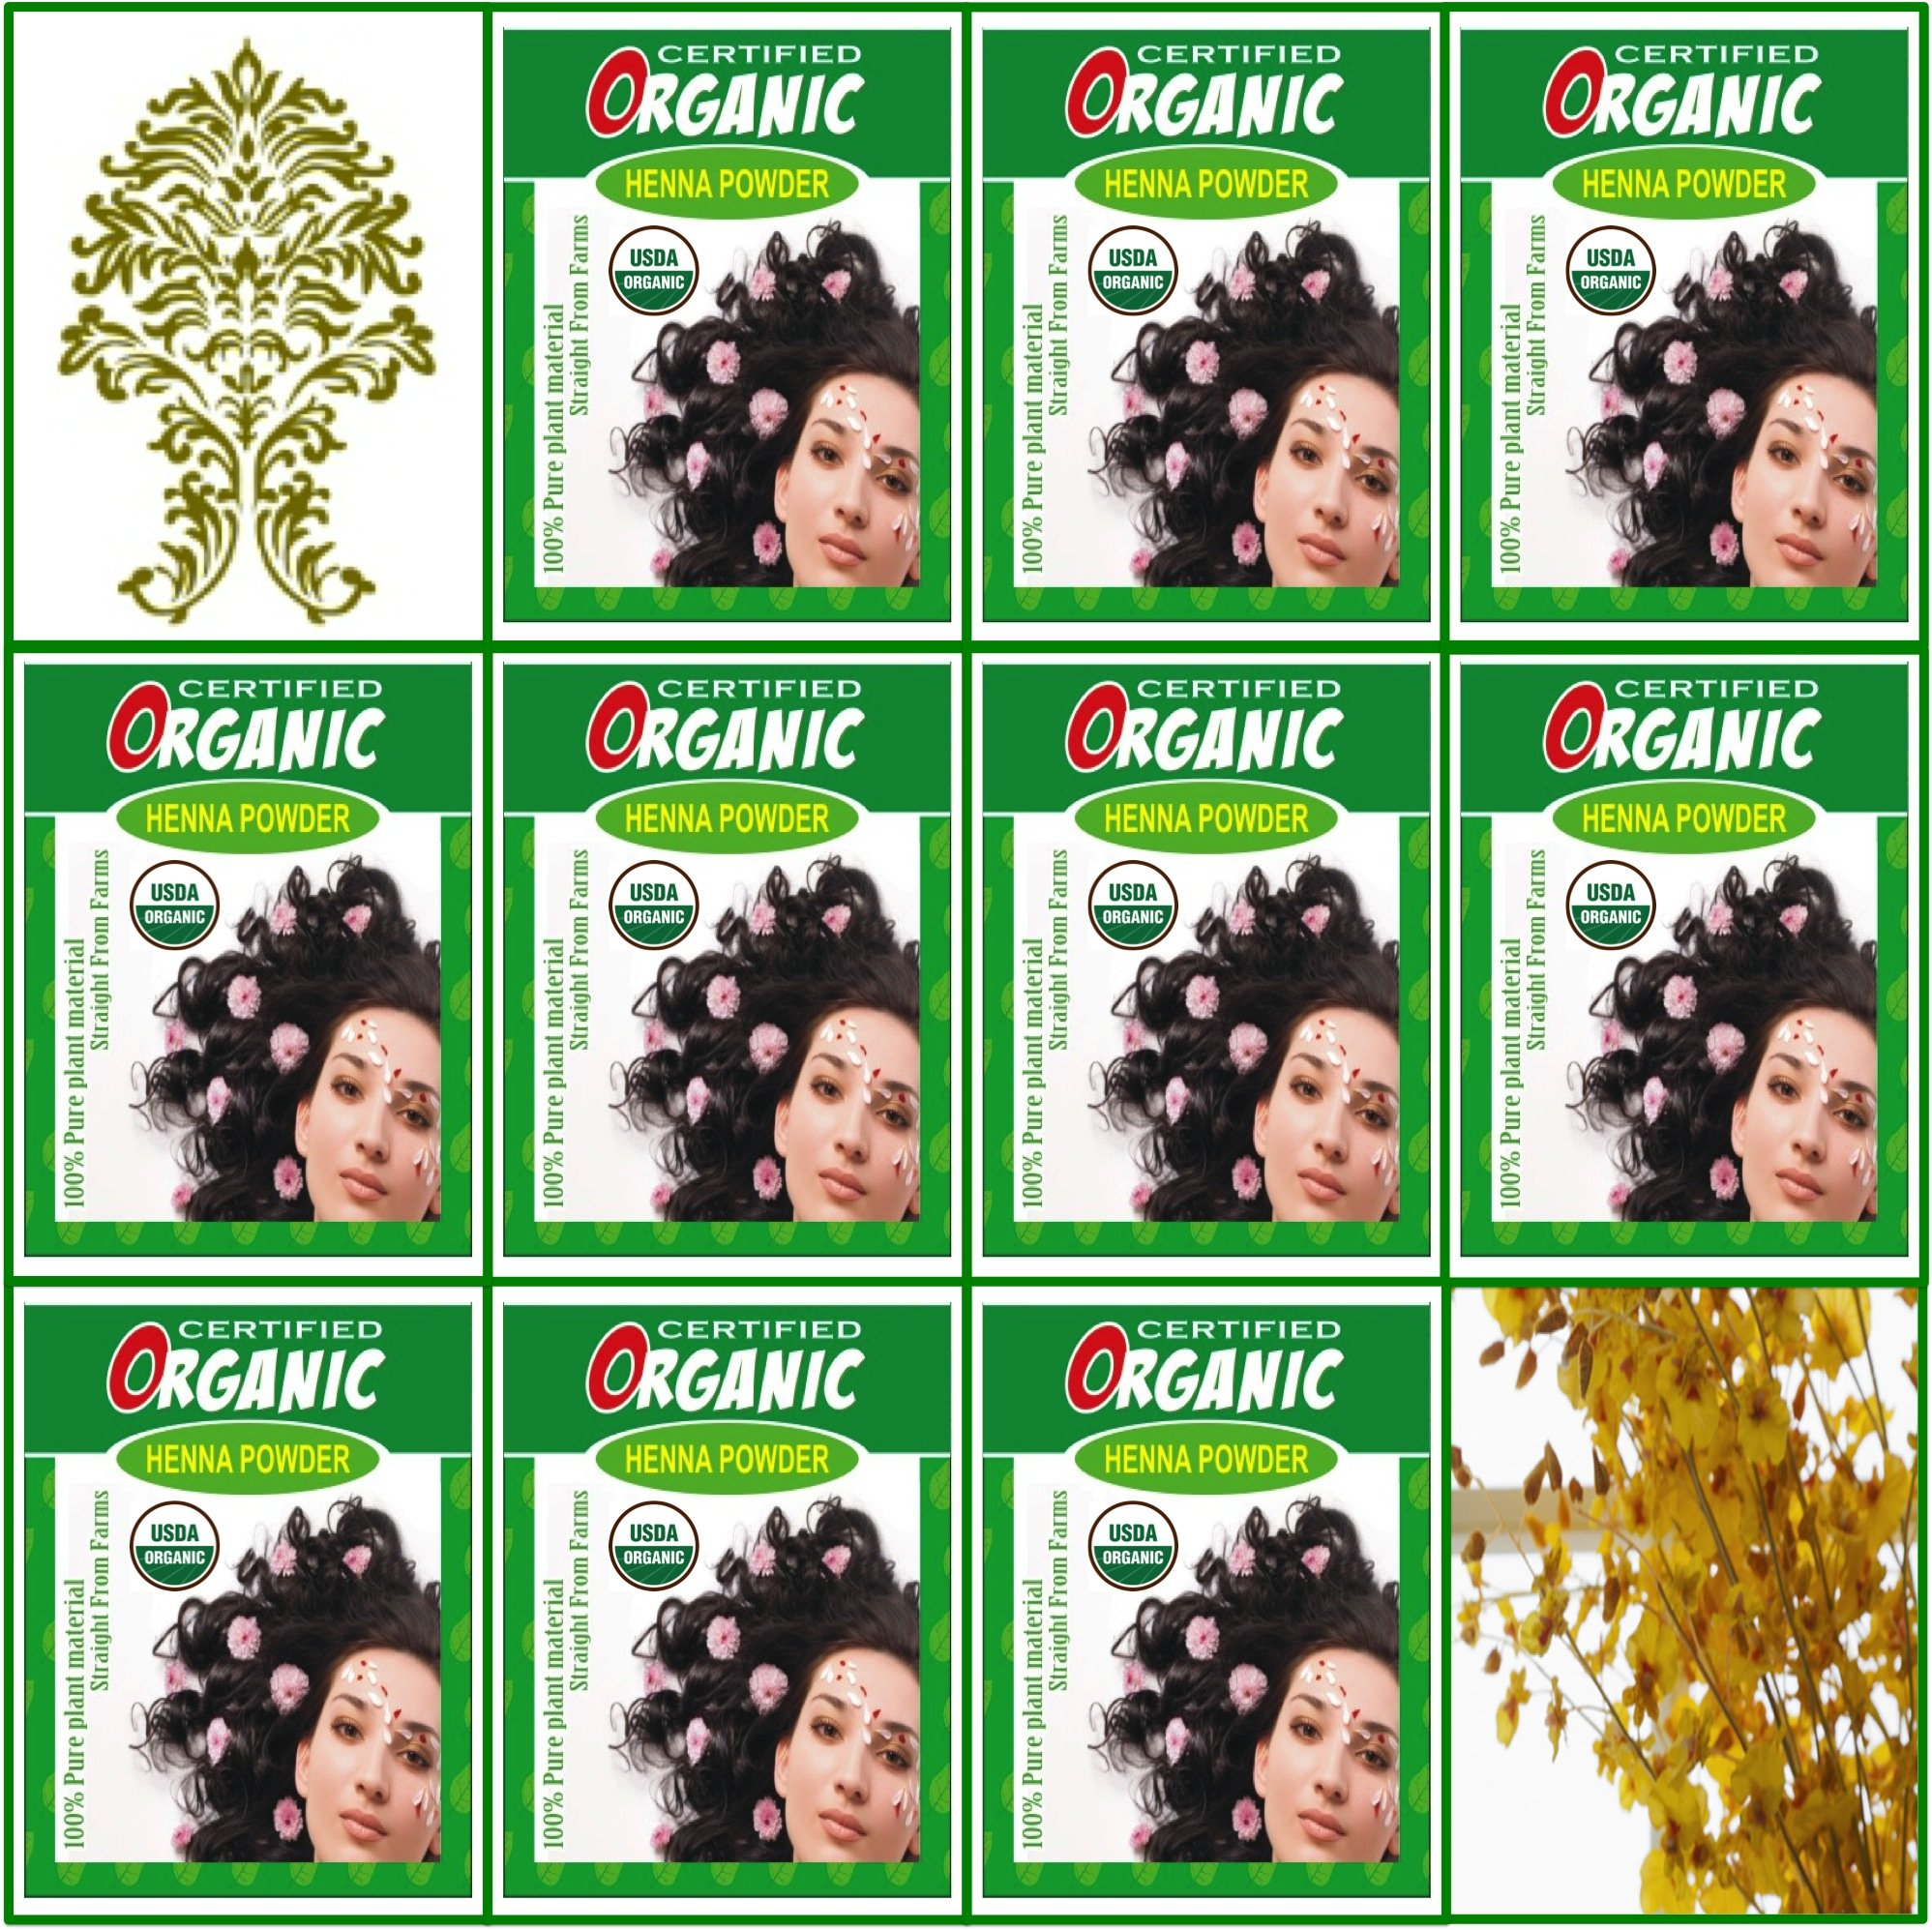 (Qty. 10) 100g Certified Organic Henna Powder for Hair Color Conditioning. Golden Brown Color. by GaneshaSpice